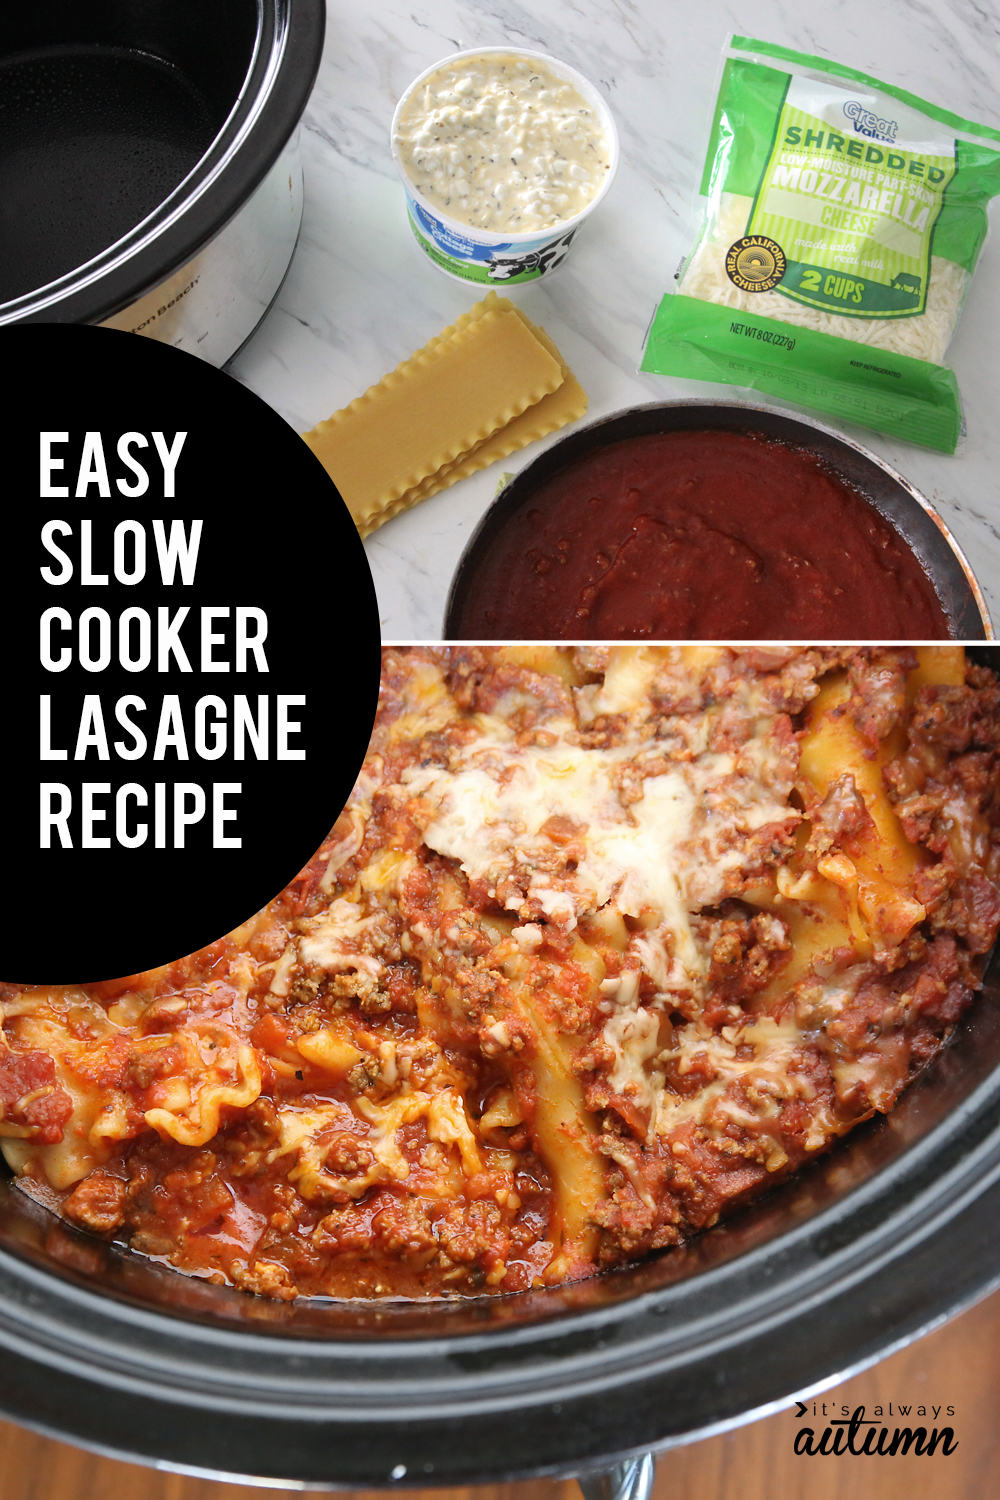 Slow cooker lasagne recipe. Did you know you can make lasagna in the crockpot? No need to heat up your oven!